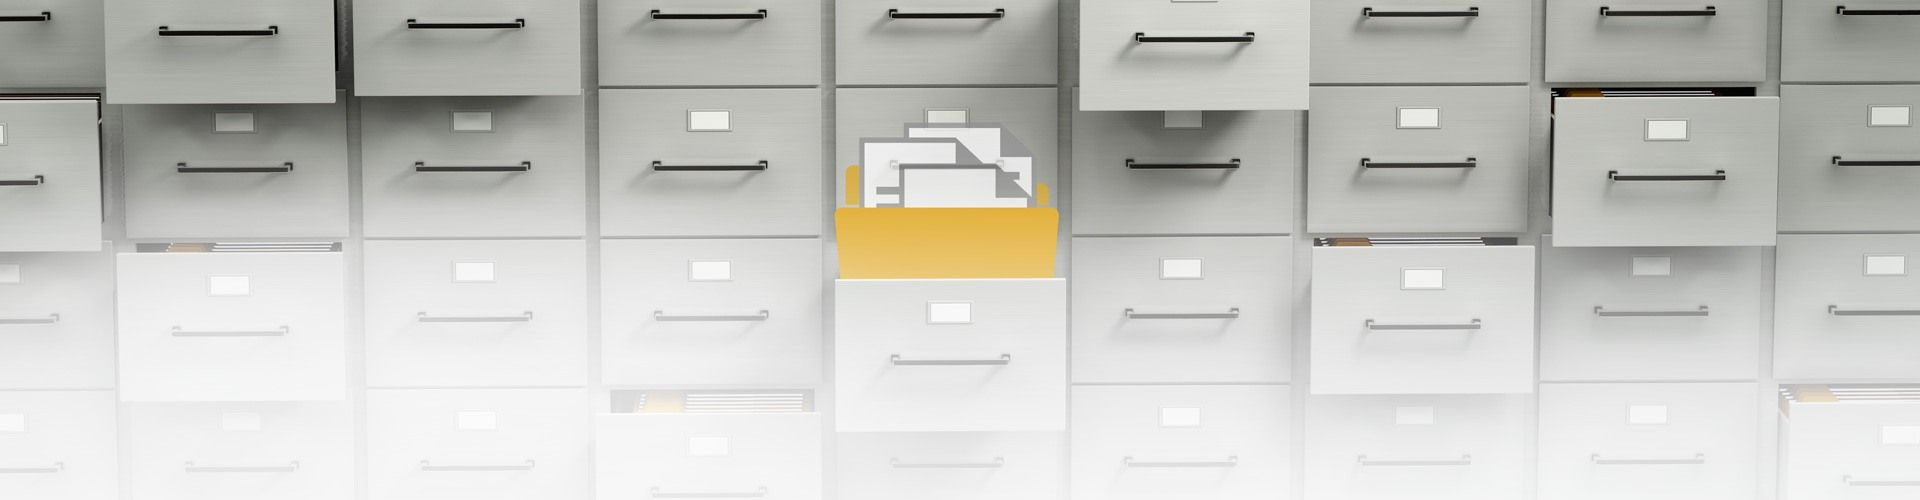 Say goodbye to filing cabinets with document scanning and digital storage solutions